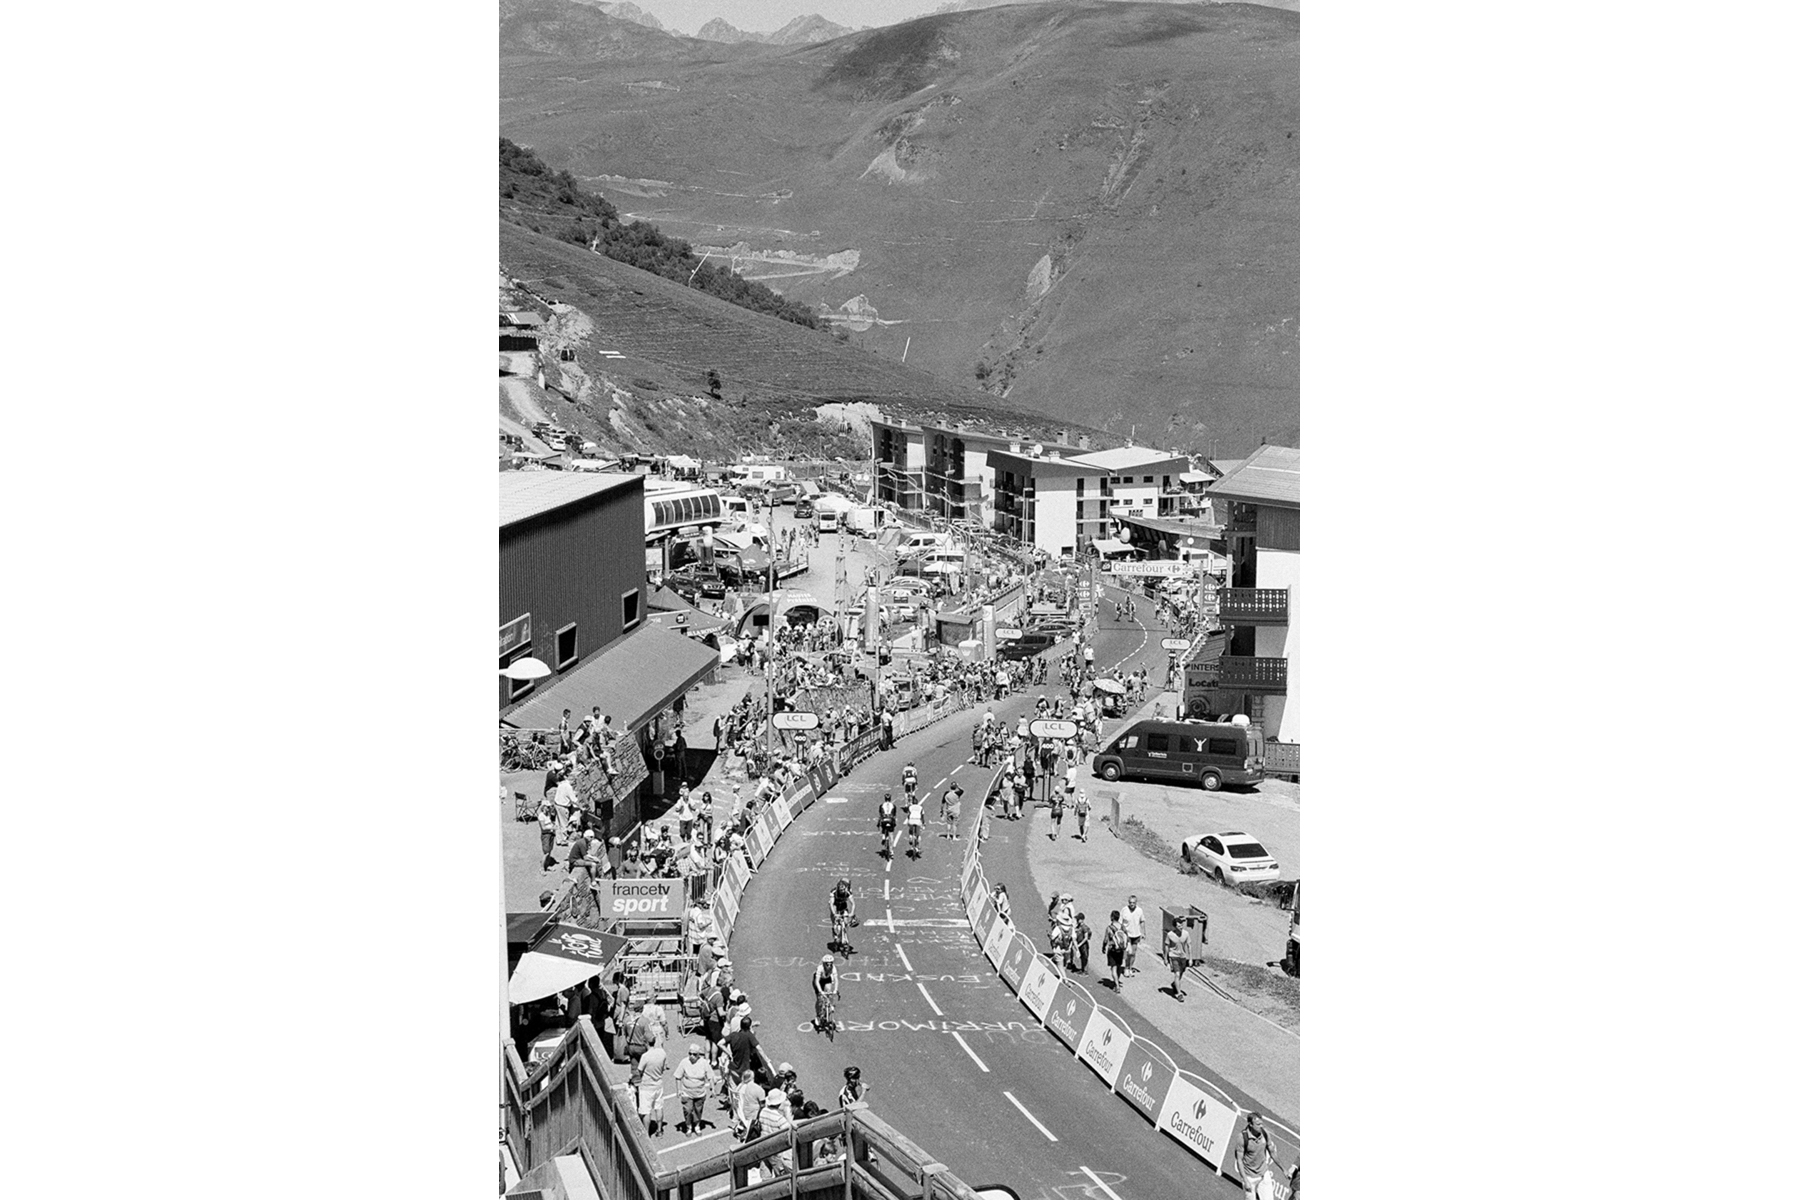 Le Tour de France 2014 'Pla d'Adet' is a ski resort in the French Pyrenees. The resort is situated at an altitude of 1,680 metres. The Tour de France has featured Pla d'Adet as a finish on 10 occasions since 1974. Le 'Pla d'Adet' est une station de ski dans les Pyrénées françaises. Il est situé à 1680 mètres. Il fut dix fois arrivée d'étape depuis sa première fois en 1974. 'Pla d'Adet' ist ein Skigebiet in den französischen Pyrenäen. Es liegt auf 1.680 Metern Höhe. Es ist bereits zum zehnten Mal Ziel einer Etappe – zum Ersten Mal im Jahr 1974. 'Pla d'Adet' es una estación de esquí en los Pirineos franceses. Se encuentra a 1.680 m de altitud. Es la décima ocasión en que transcurre una etapa final aquí, la primera vez fue en 1974.